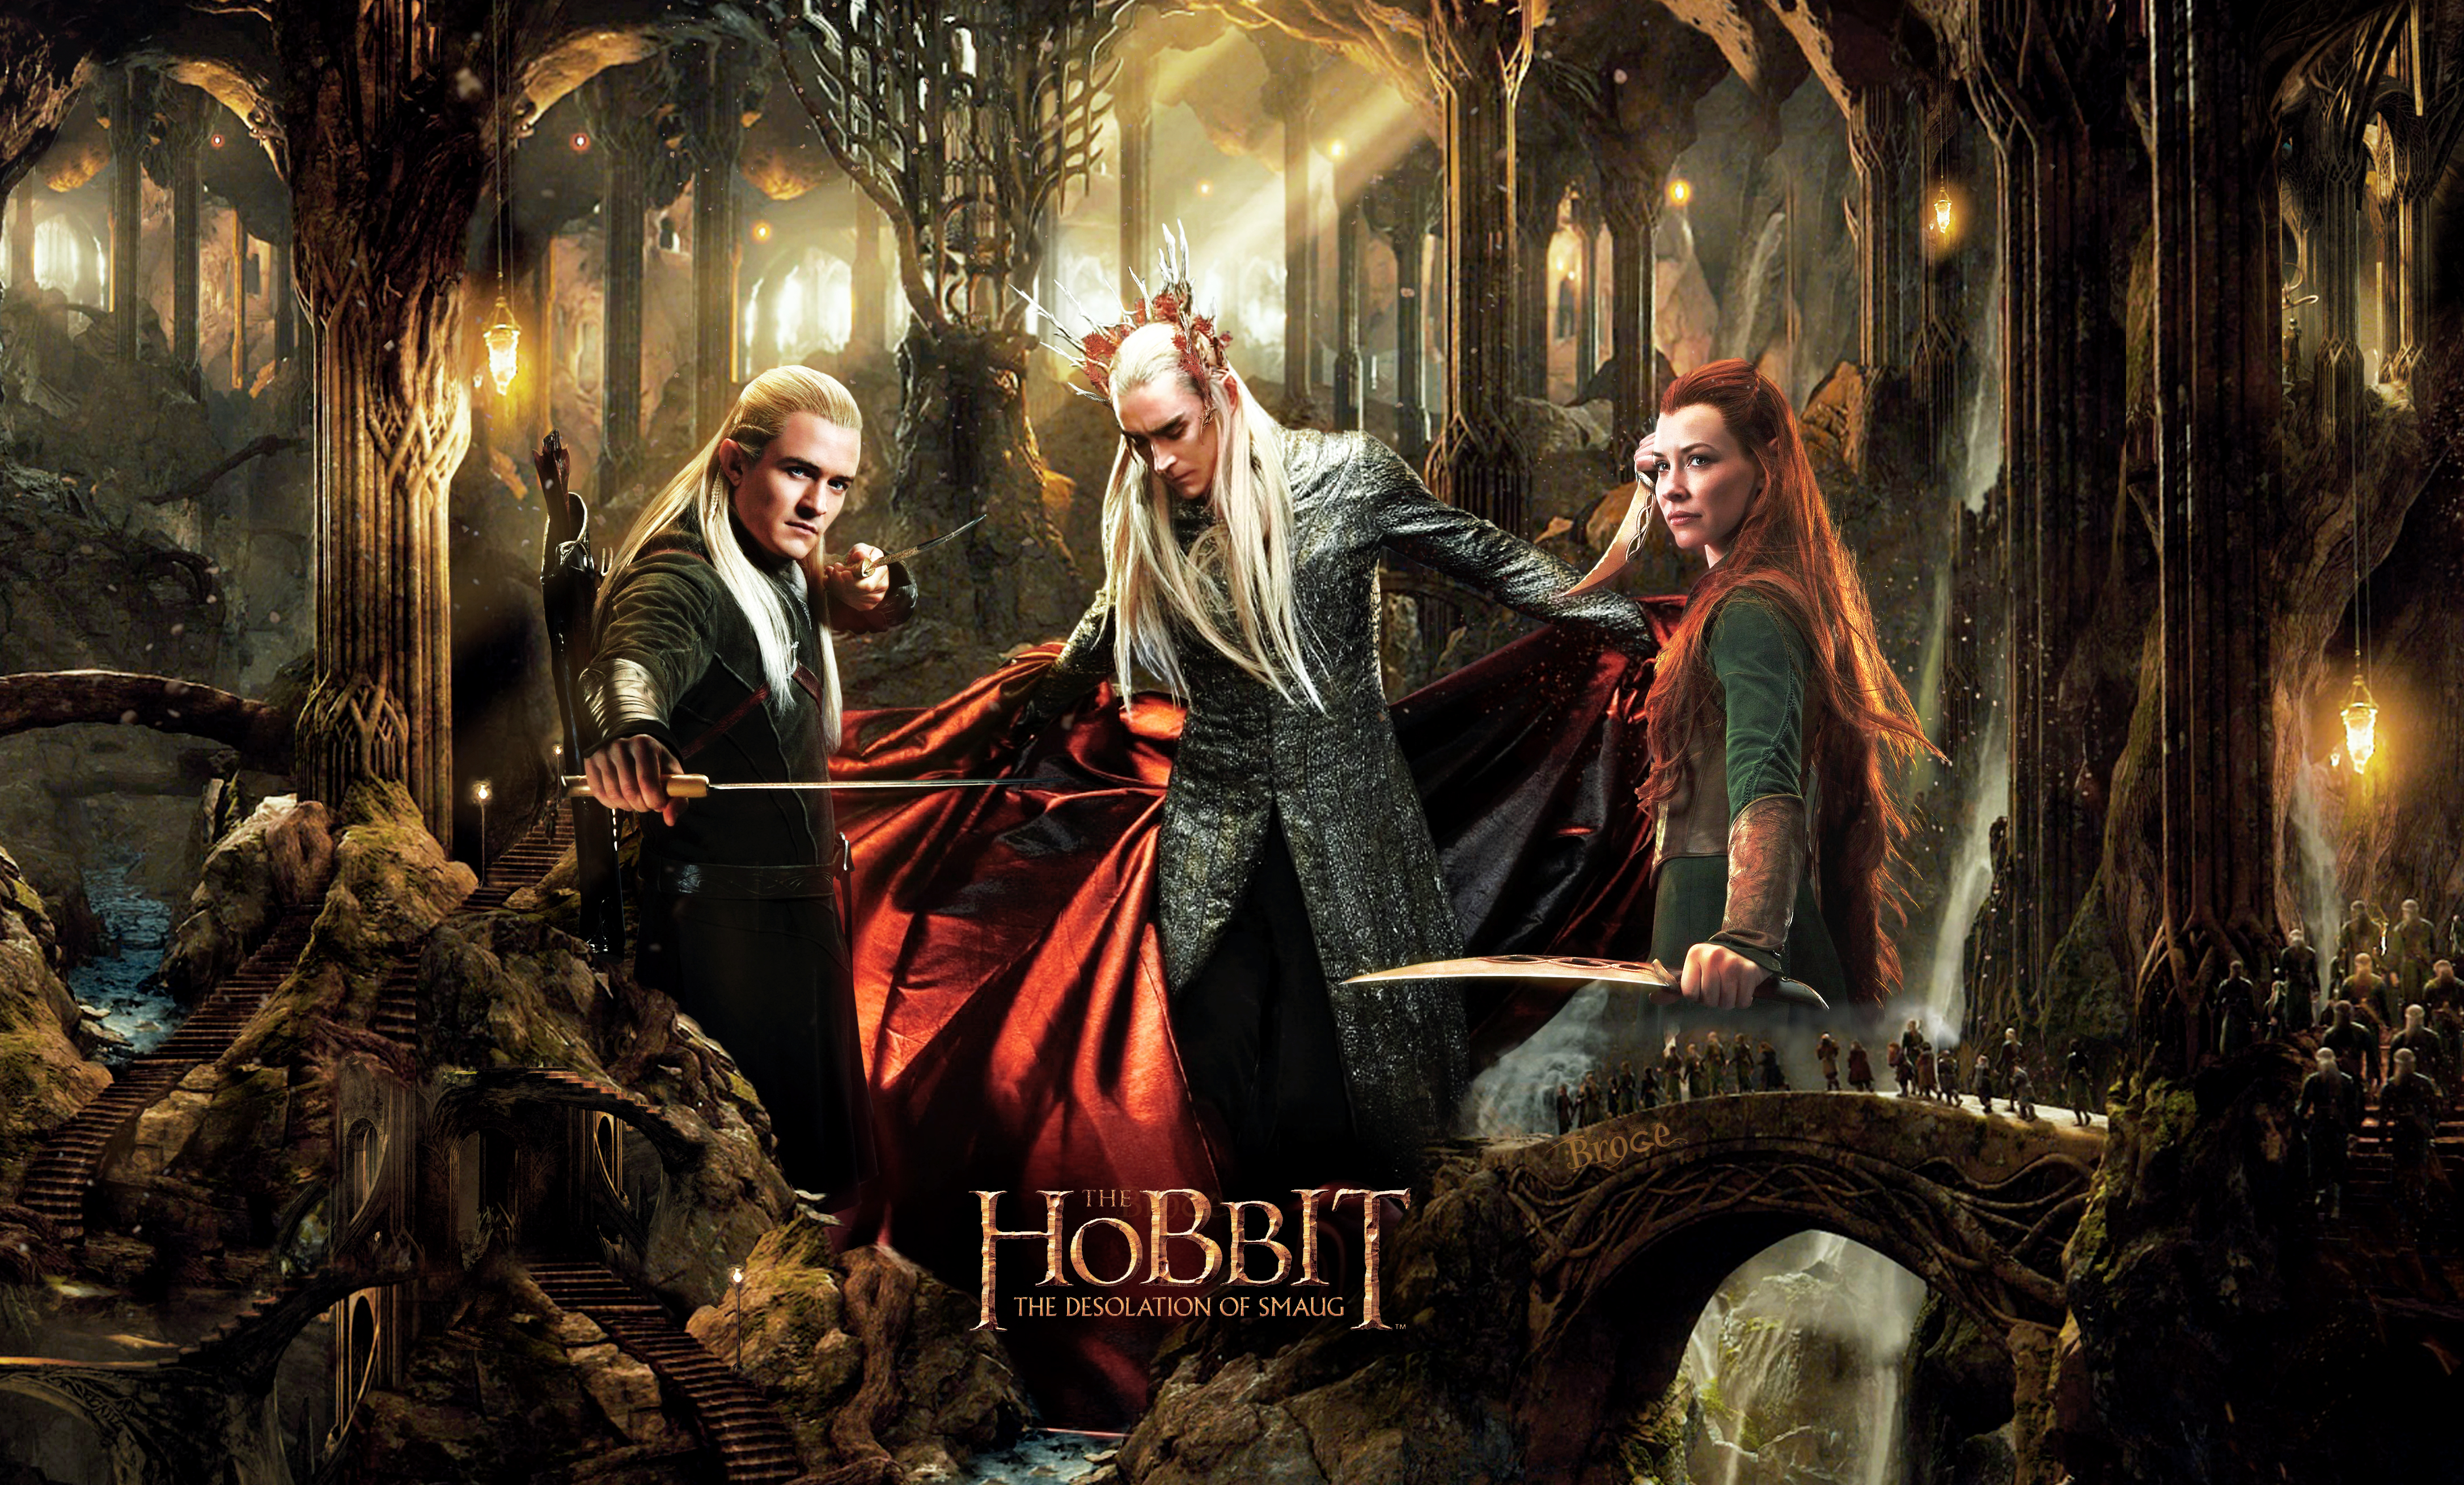 The Hobbit the Desolation of Smaug wallpaper 1 4346x2620